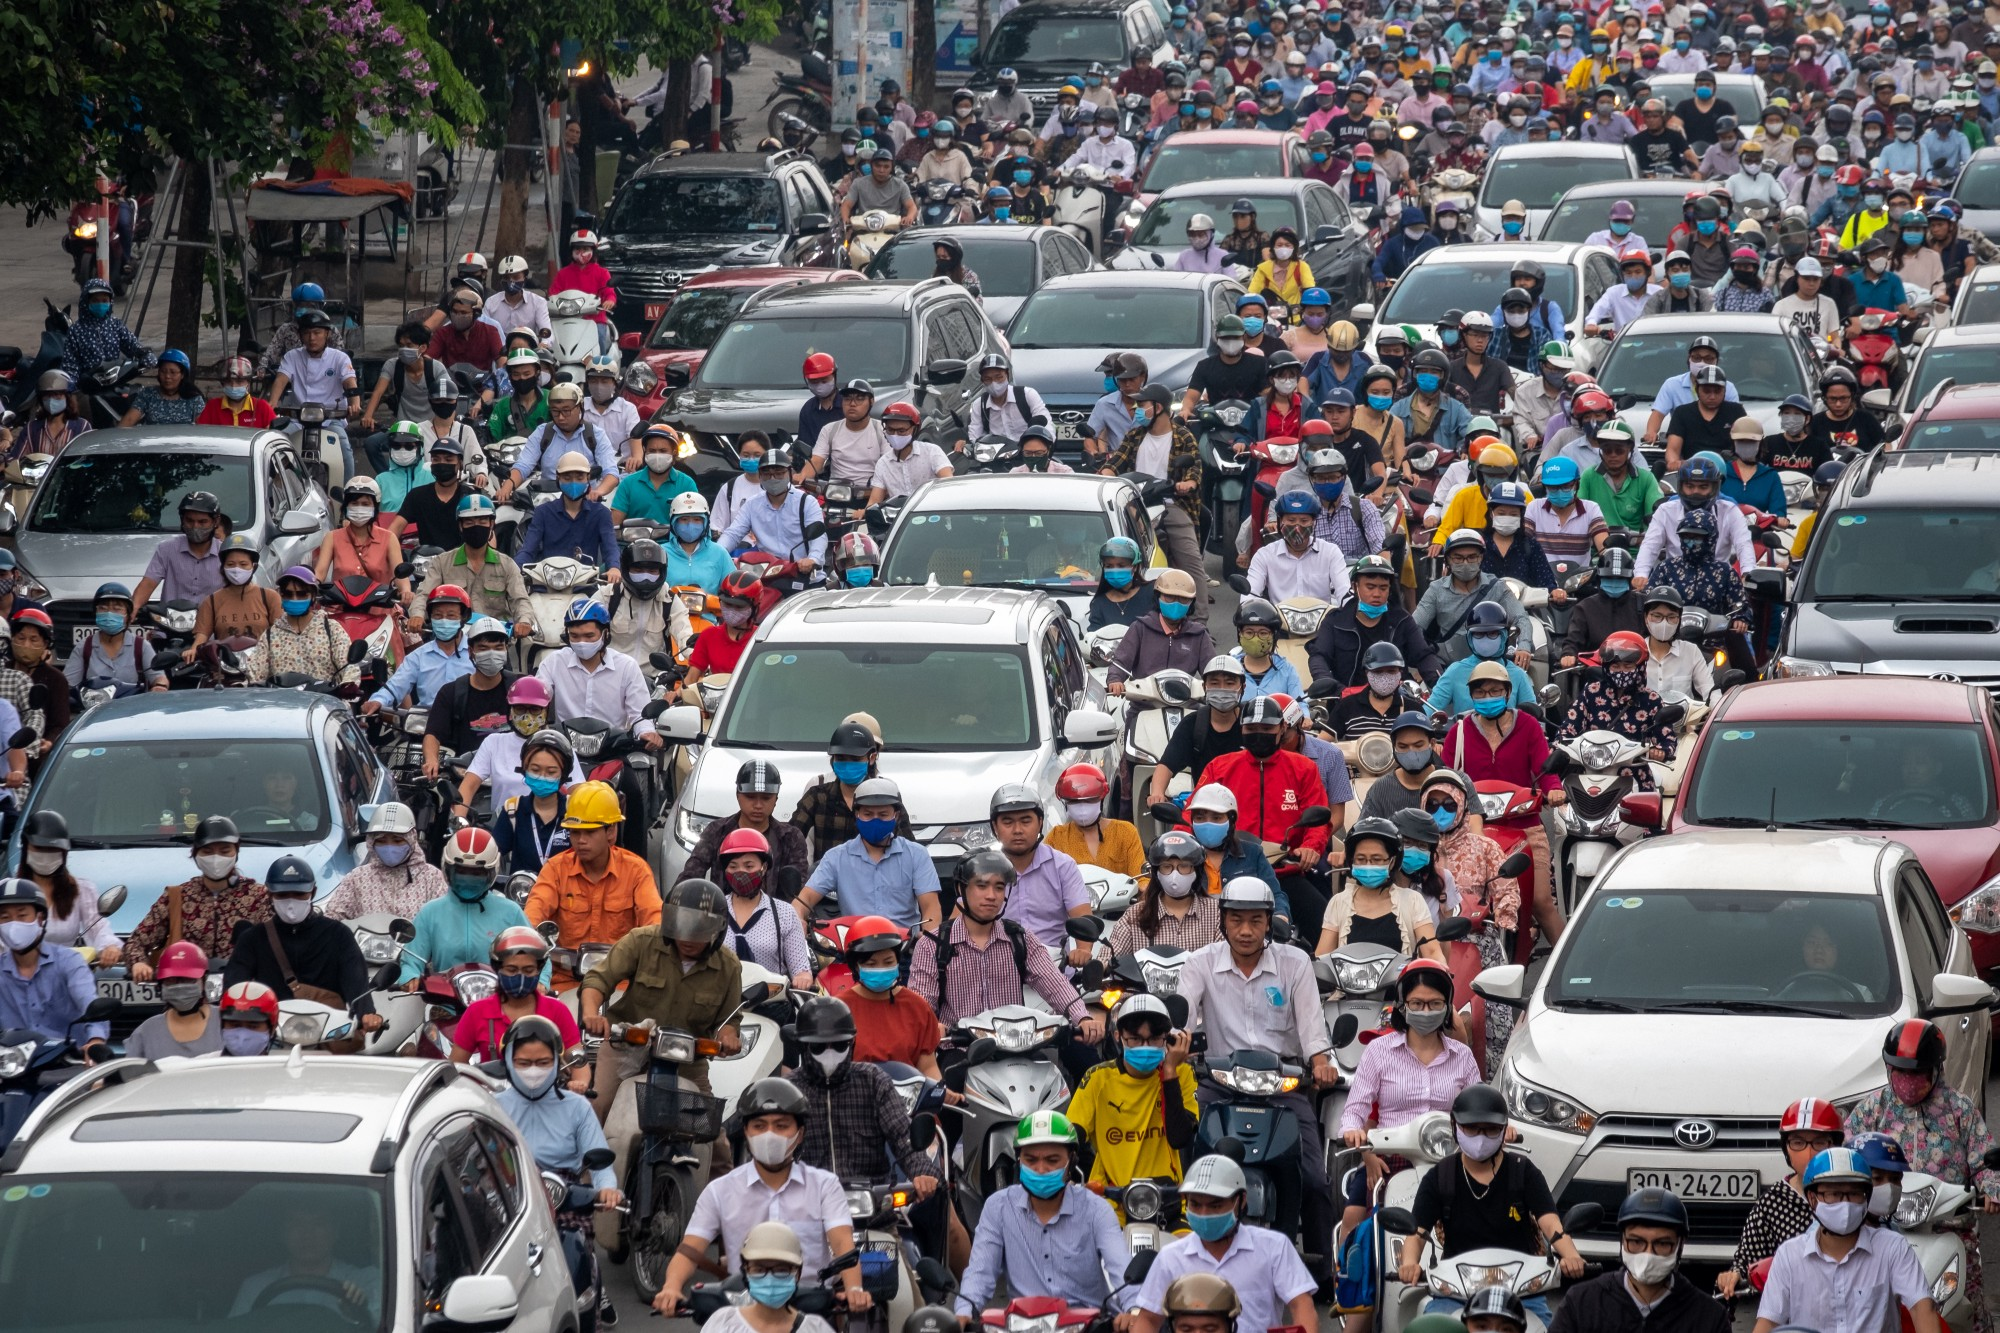 Motorbike riders with face masks are stuck in traffic during the morning peak hour on May 19, 2020 in Hanoi, Vietnam.